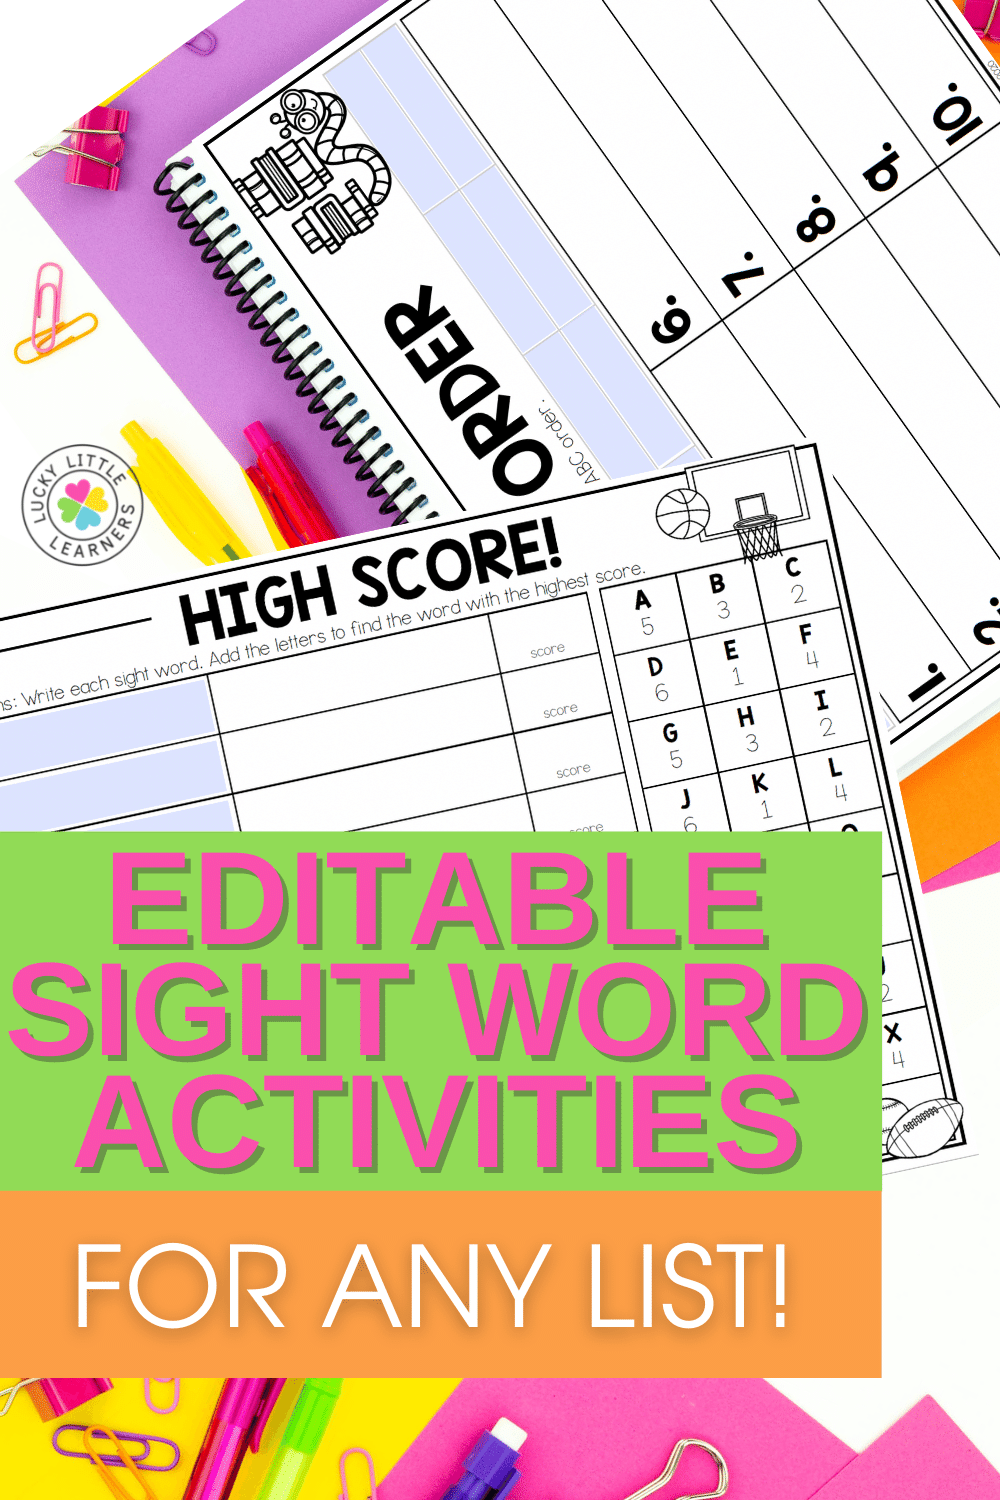 27 editable sight word activities that work with any word list